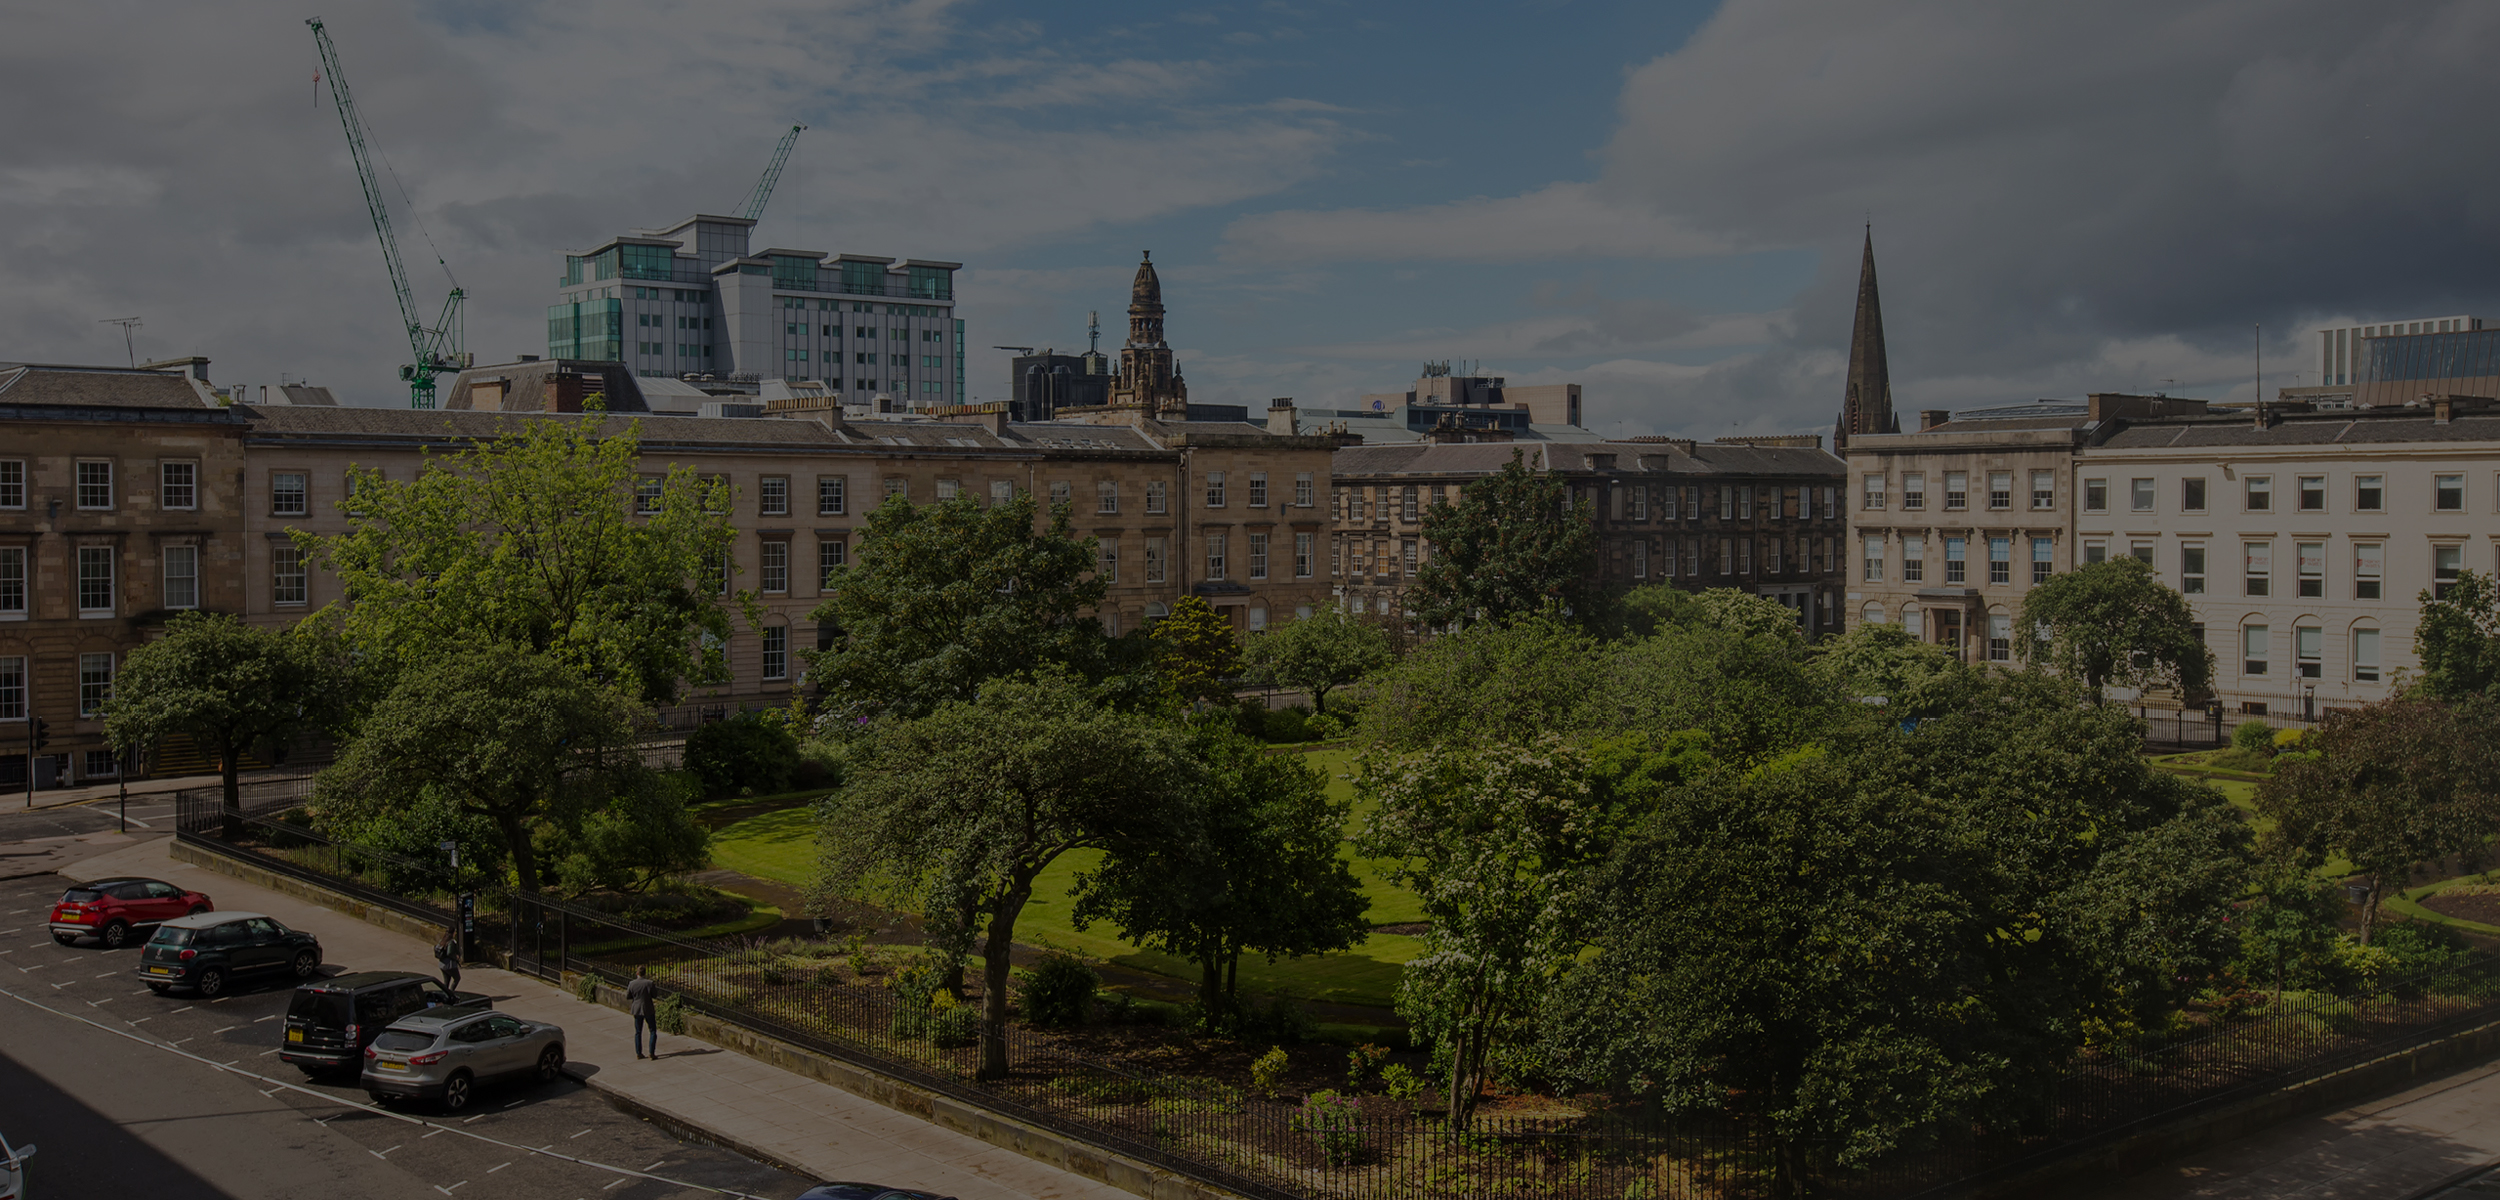 Blythswood Square Apartments Blog - news, offers and things to do in Glasgow